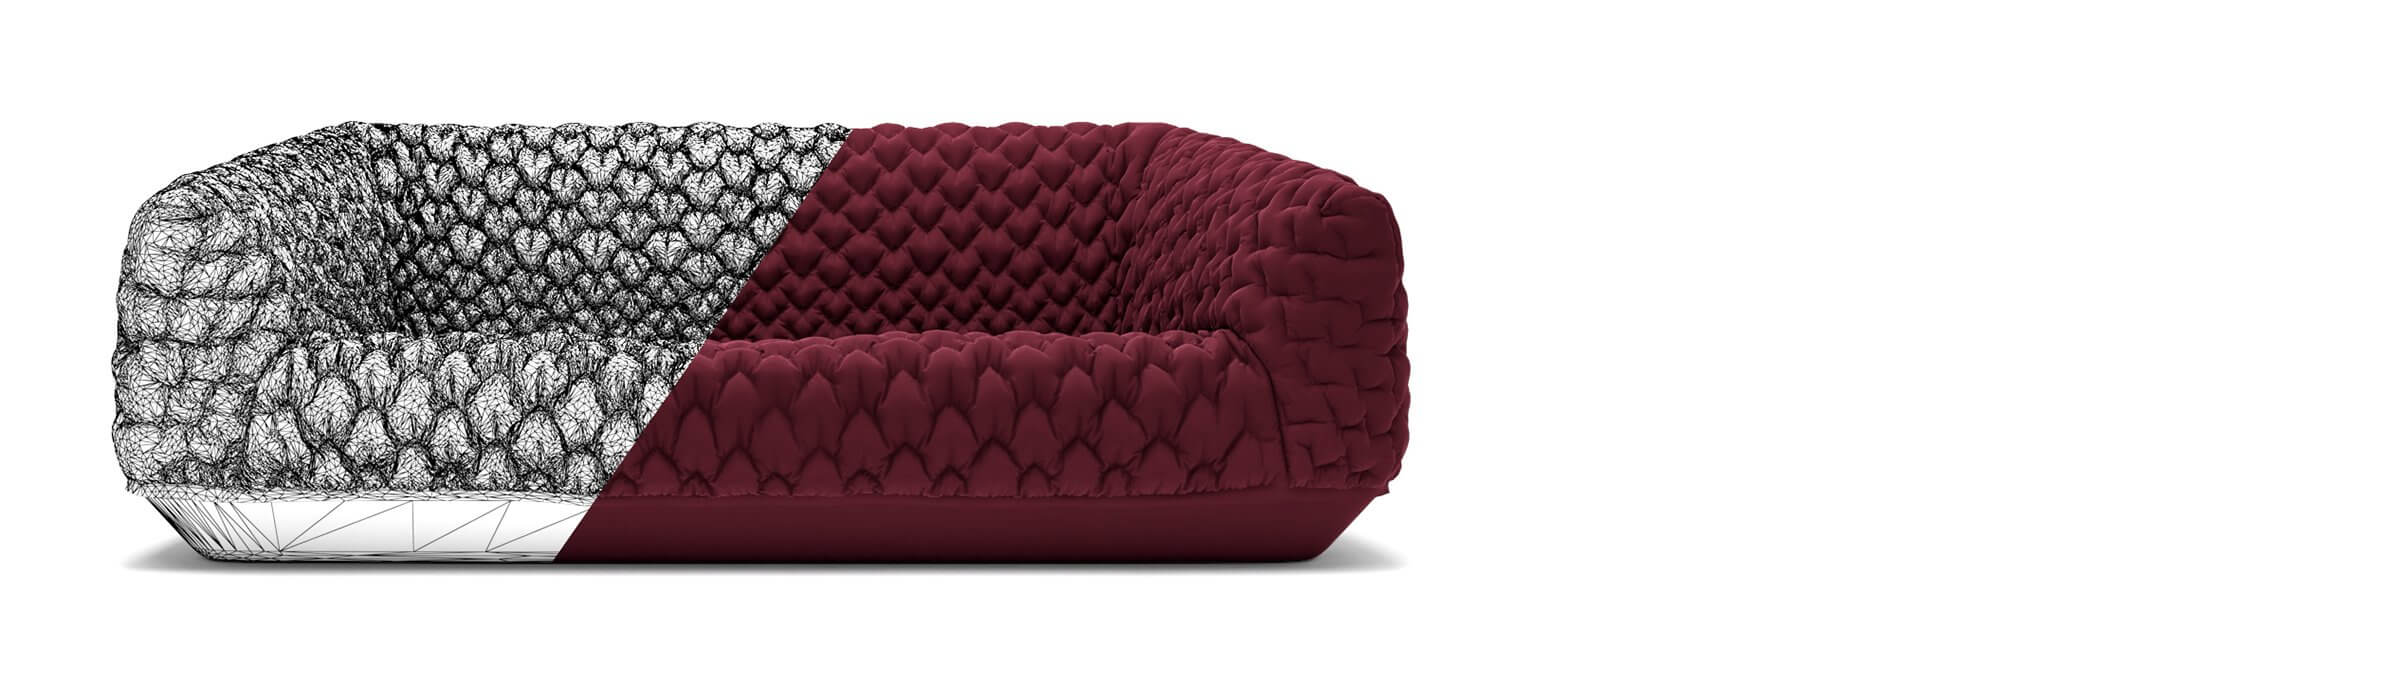 Home 3d model sofa made with love-2